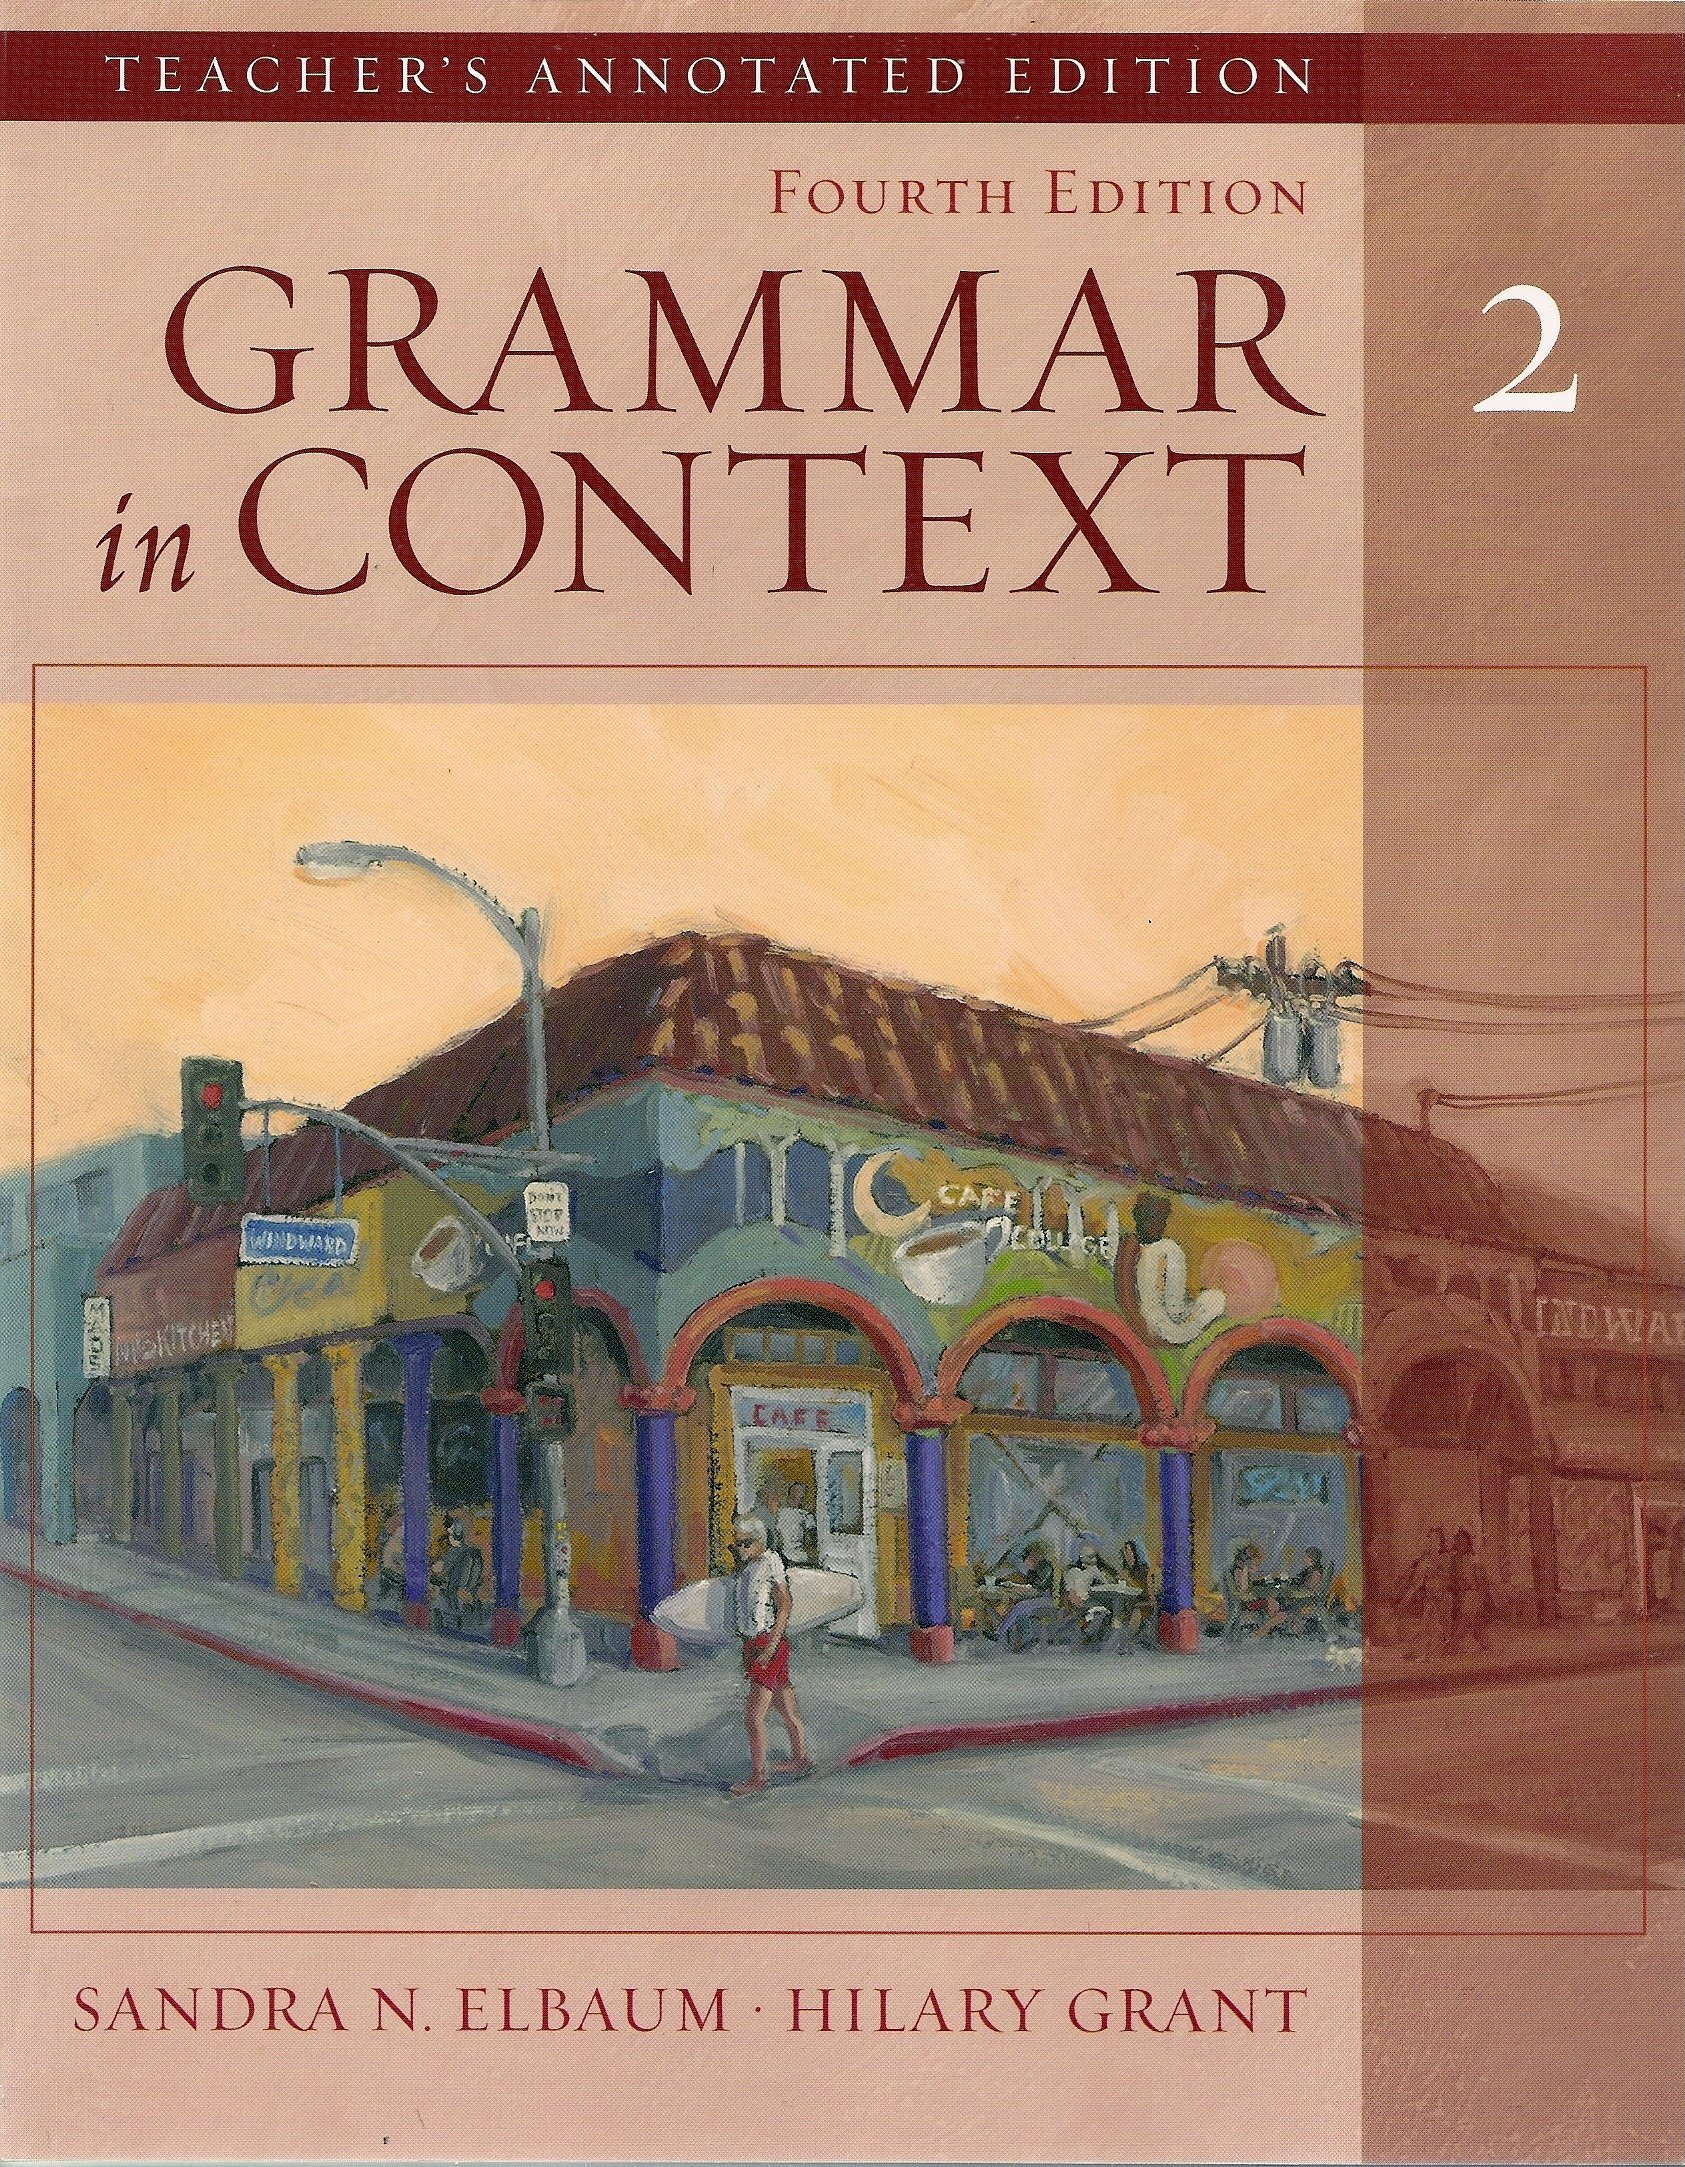 Grammar in Context 2, Fourth Edition (Teacher's Annotated Edition) PDF